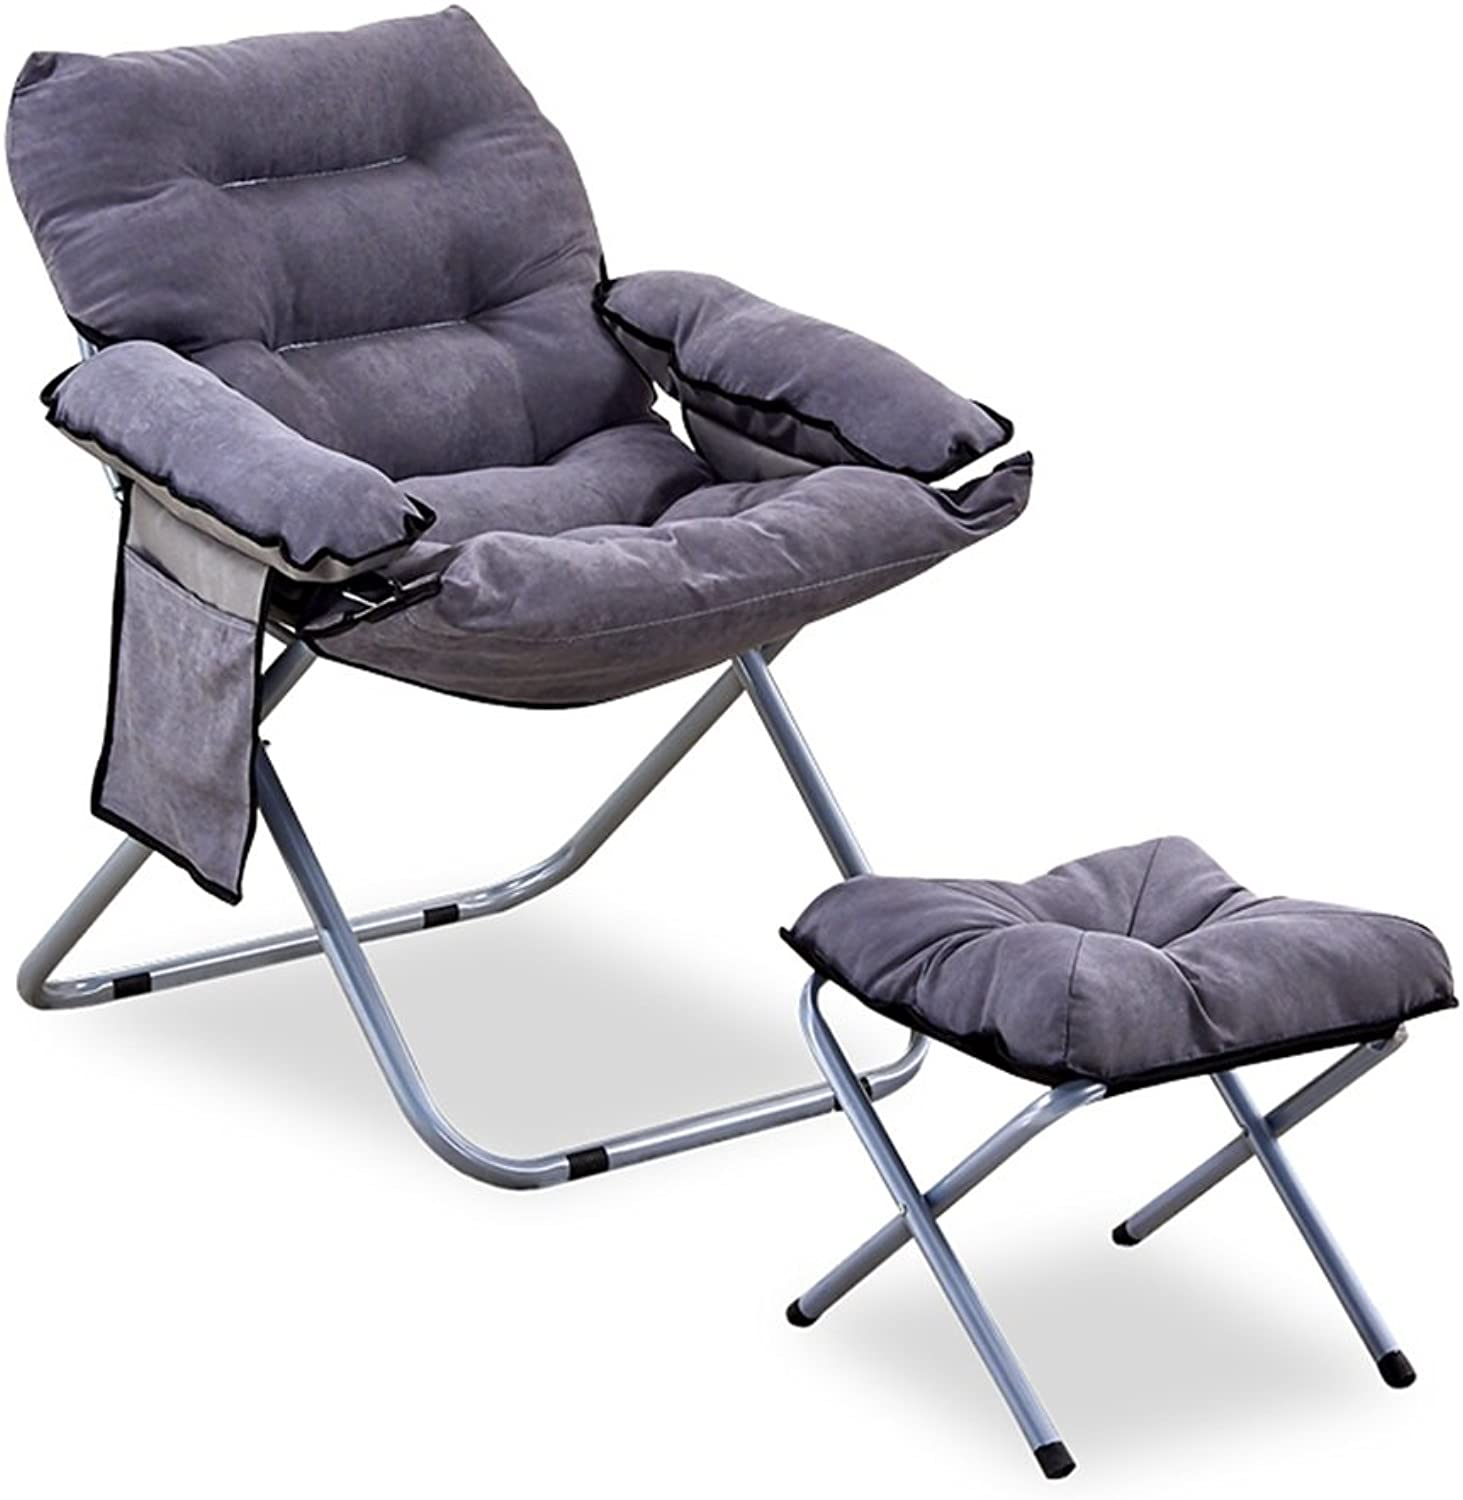 Recliners Chairs Tatami Lazy Sofa Removable Computer Sofa Lazy Chair That can be Folded in Living Room Dormitory Household Stool Home Chair Easy to Carry Sofa (with a Small Stool)